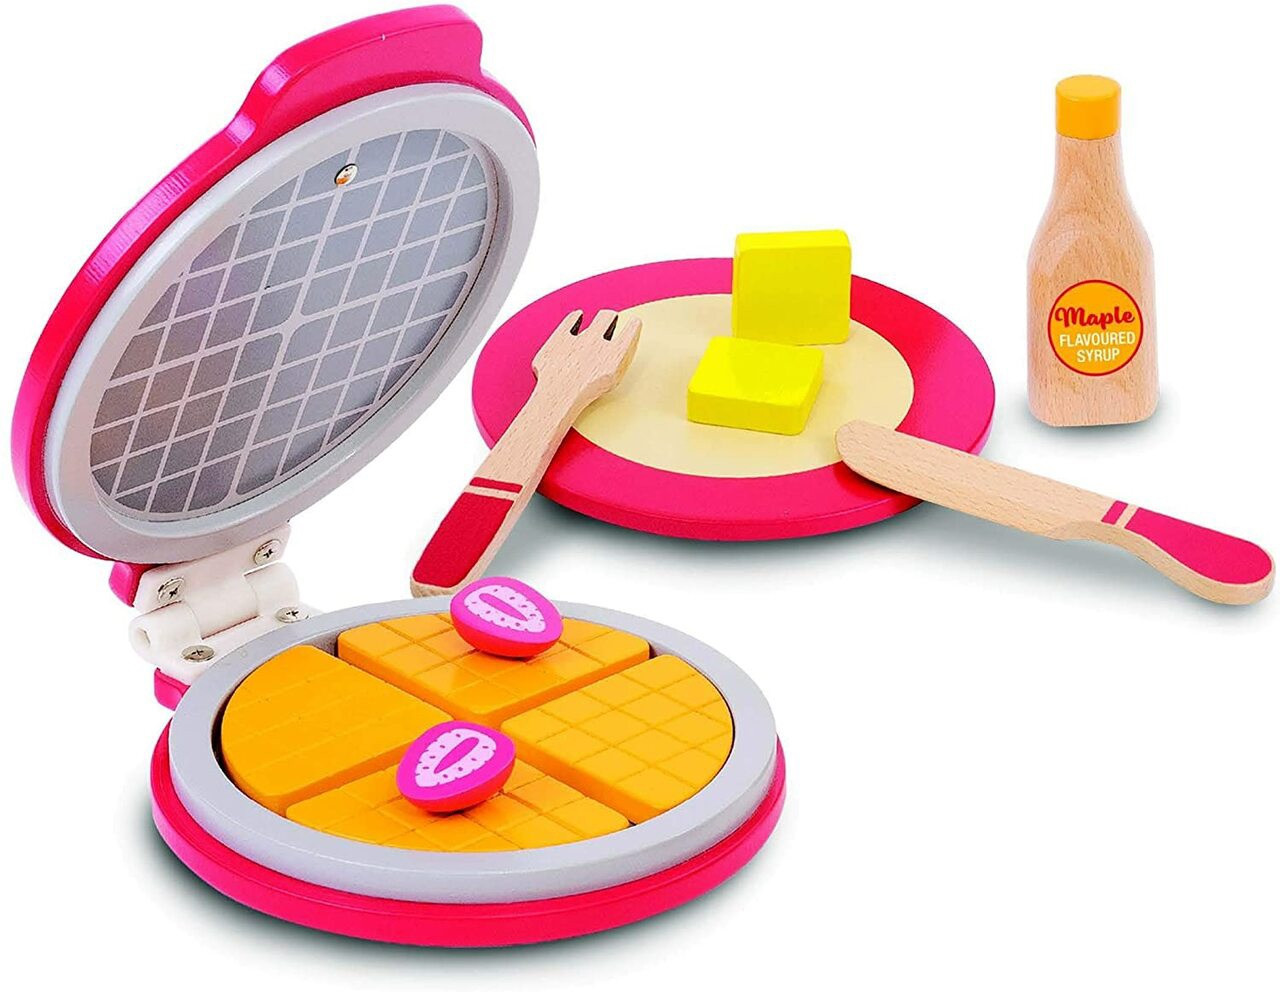 Bubbadoo Wooden Toy Waffle Maker at Baby Barn Discounts Bubbadoo Wooden Toy Waffle Maker featuring four pieces of waffle, butter, strawberries, cutlery, pretend maple syrup and a plate.